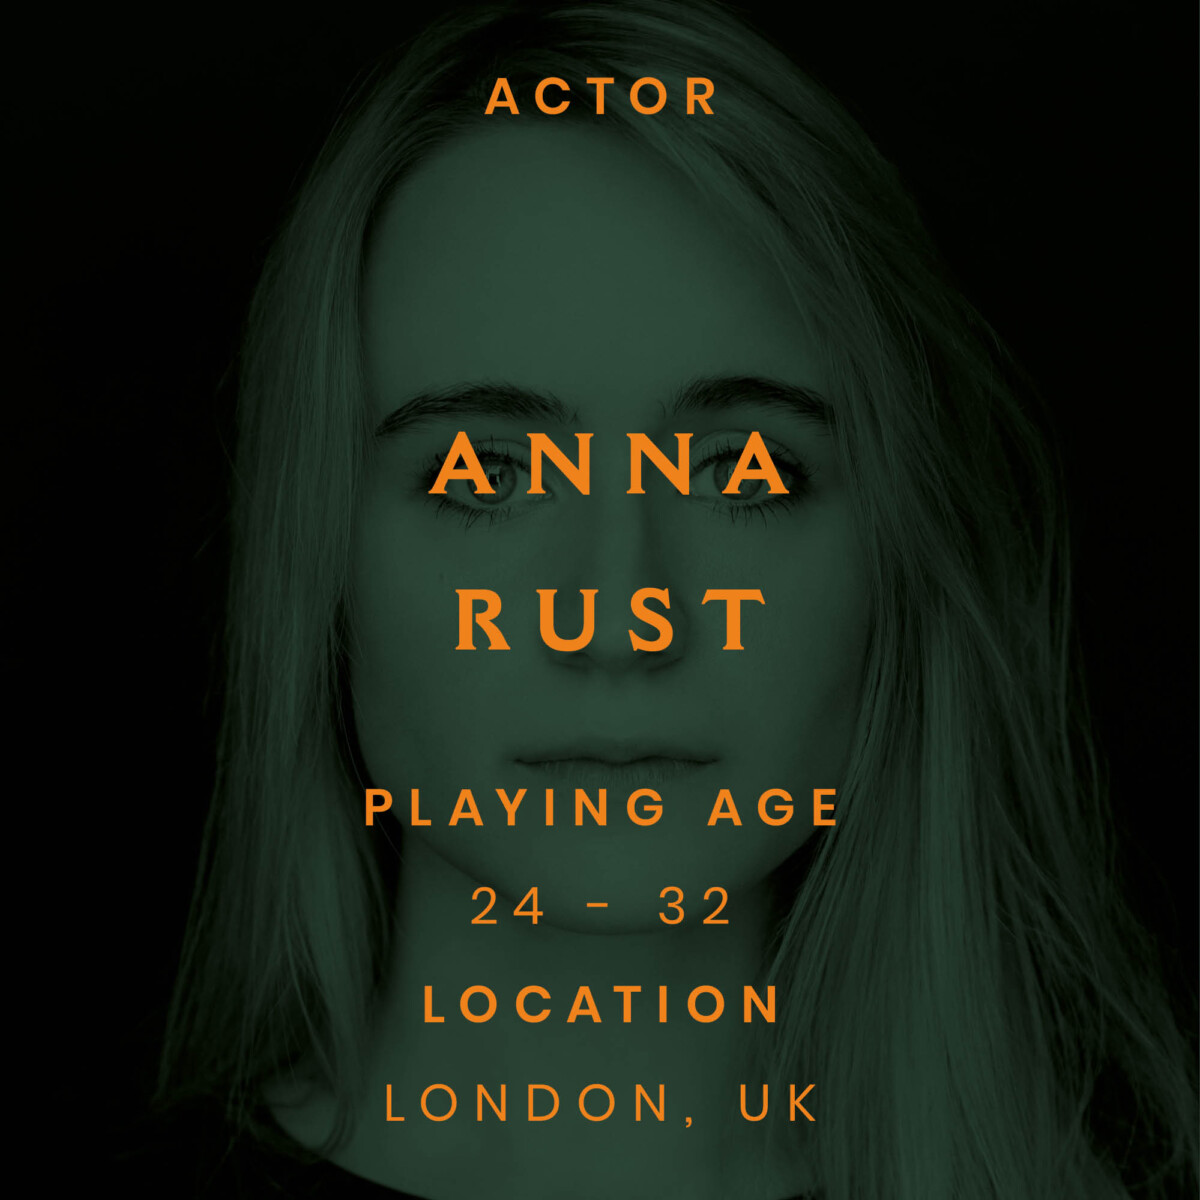 Anna, rust, London, actress, carnival row, ophelia